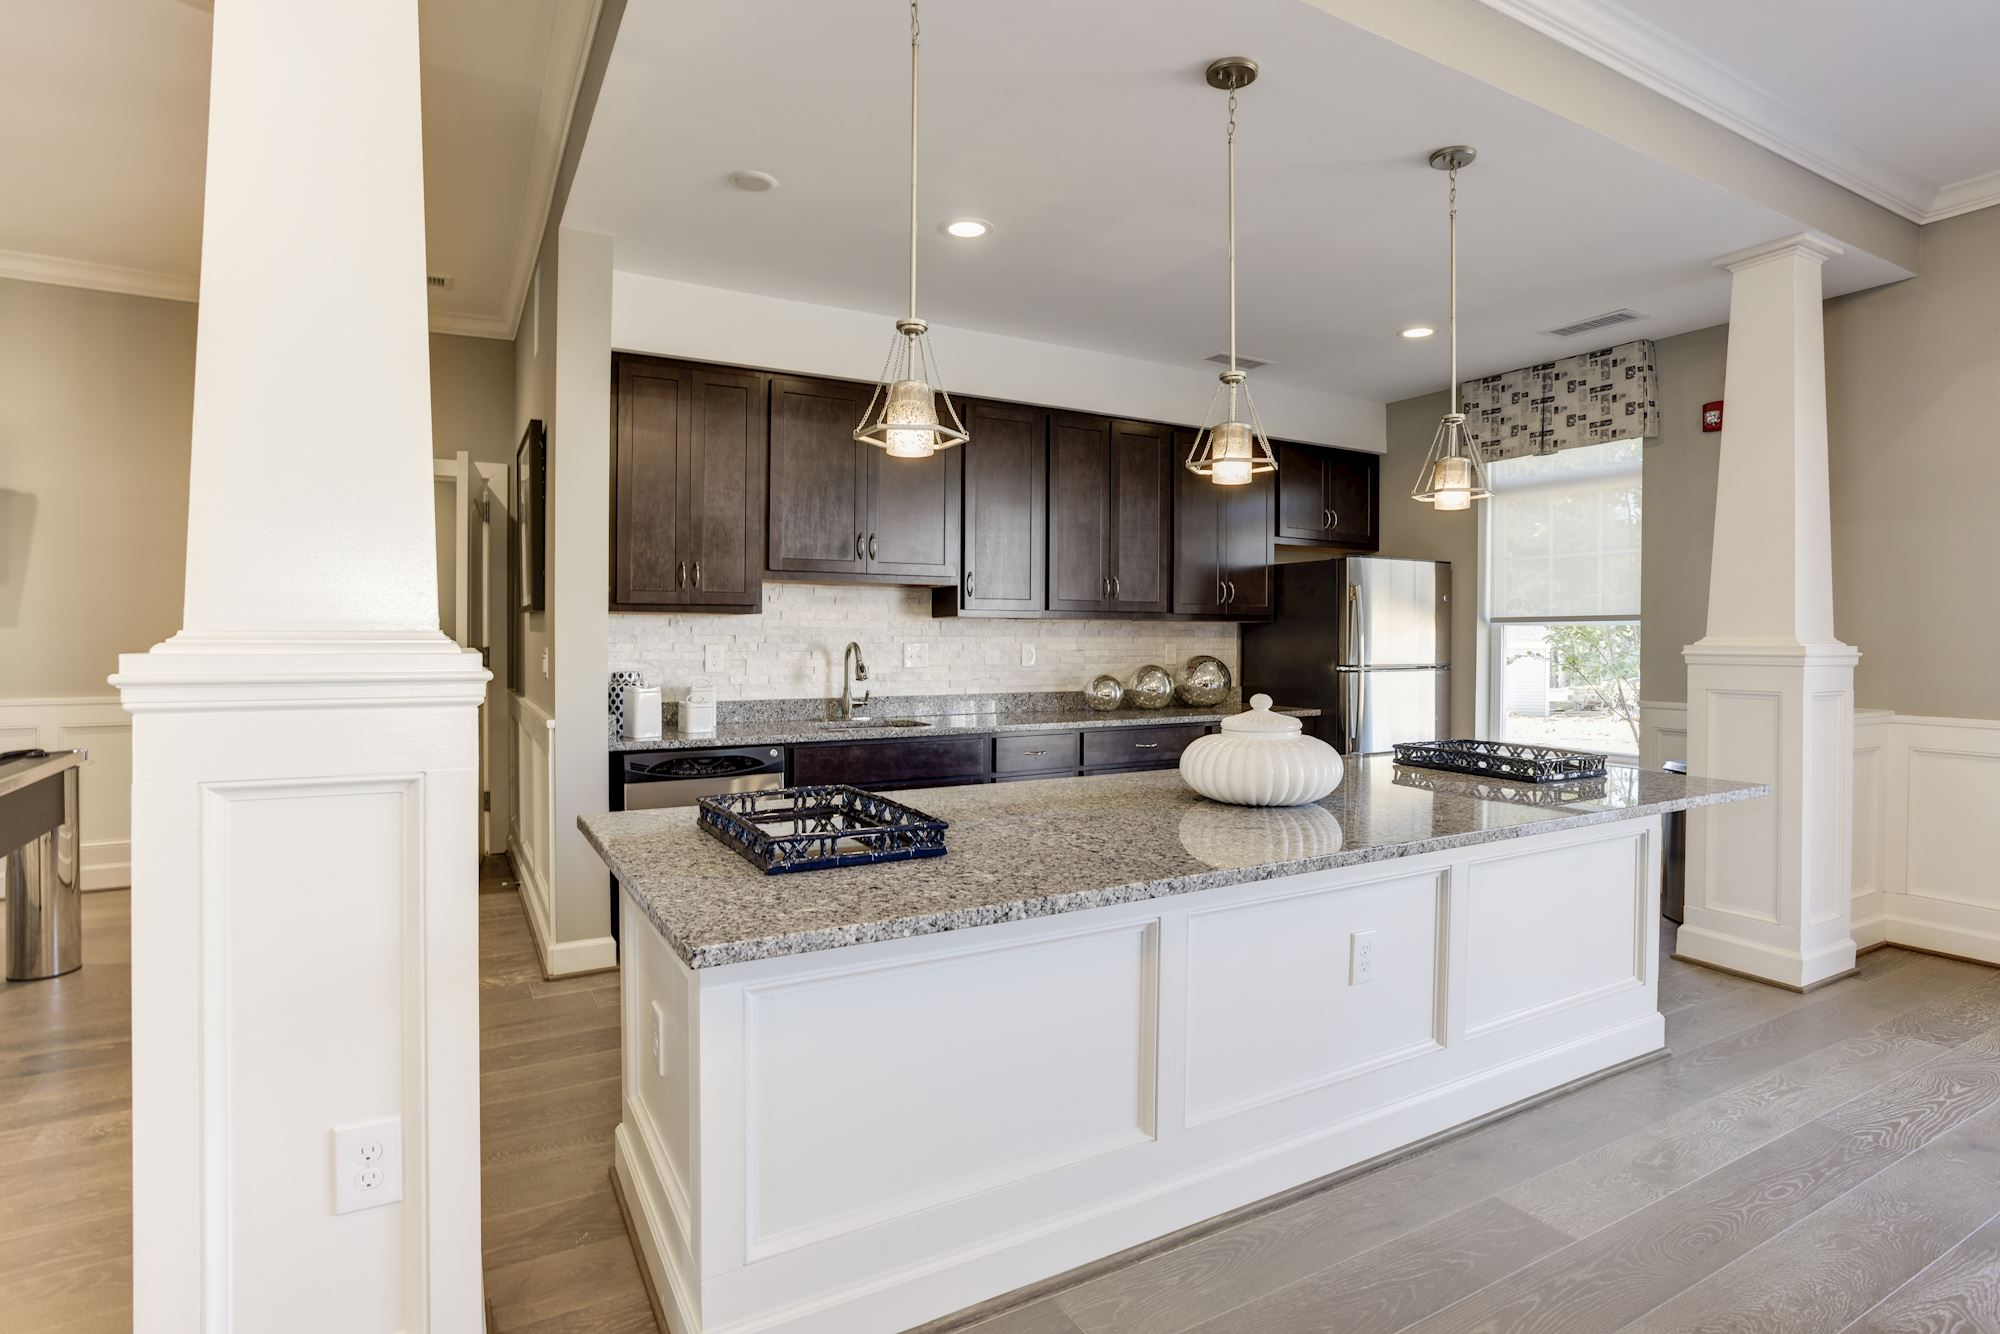 Avanti Luxury Apartments in Bel Air, MD - Clubhouse Kitchen